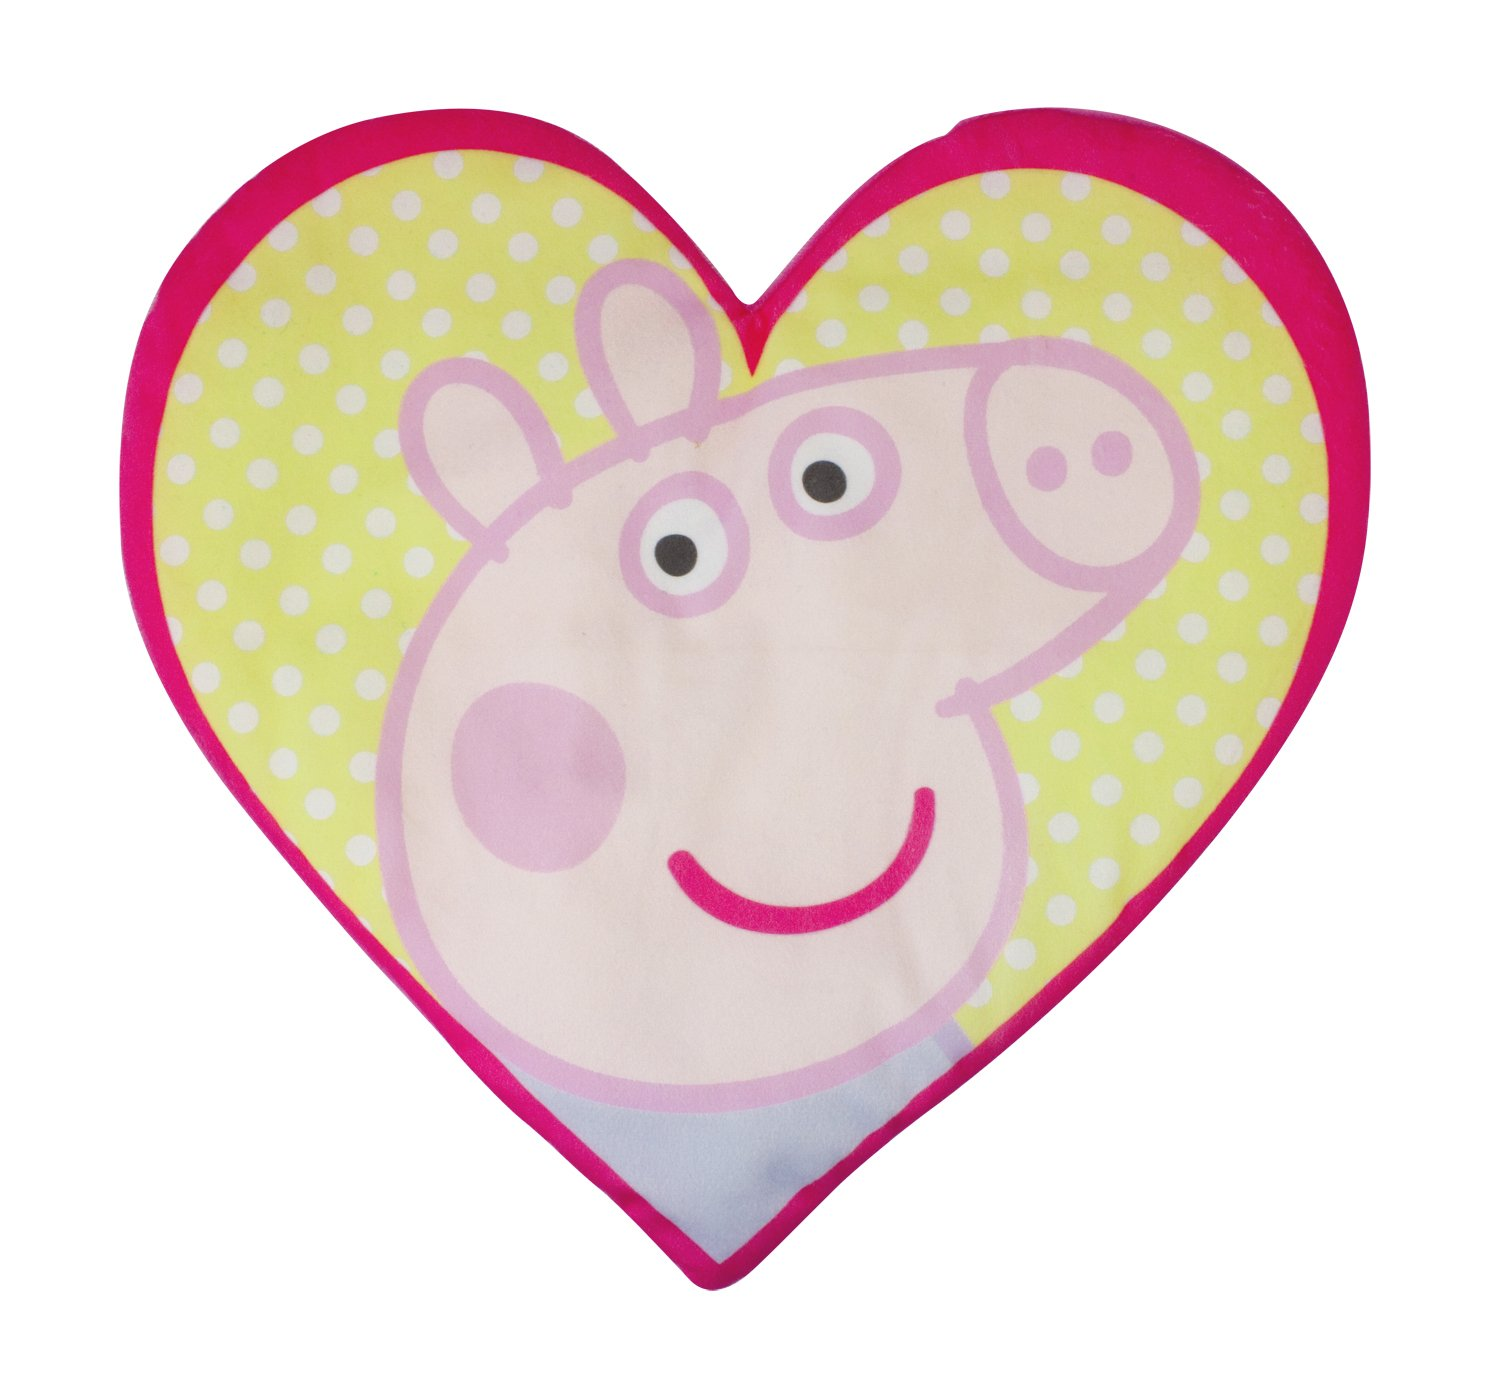 Peppa Pig Bedroom Accessories Character World Peppa Pig Adorable Pyjama Case Amazoncouk